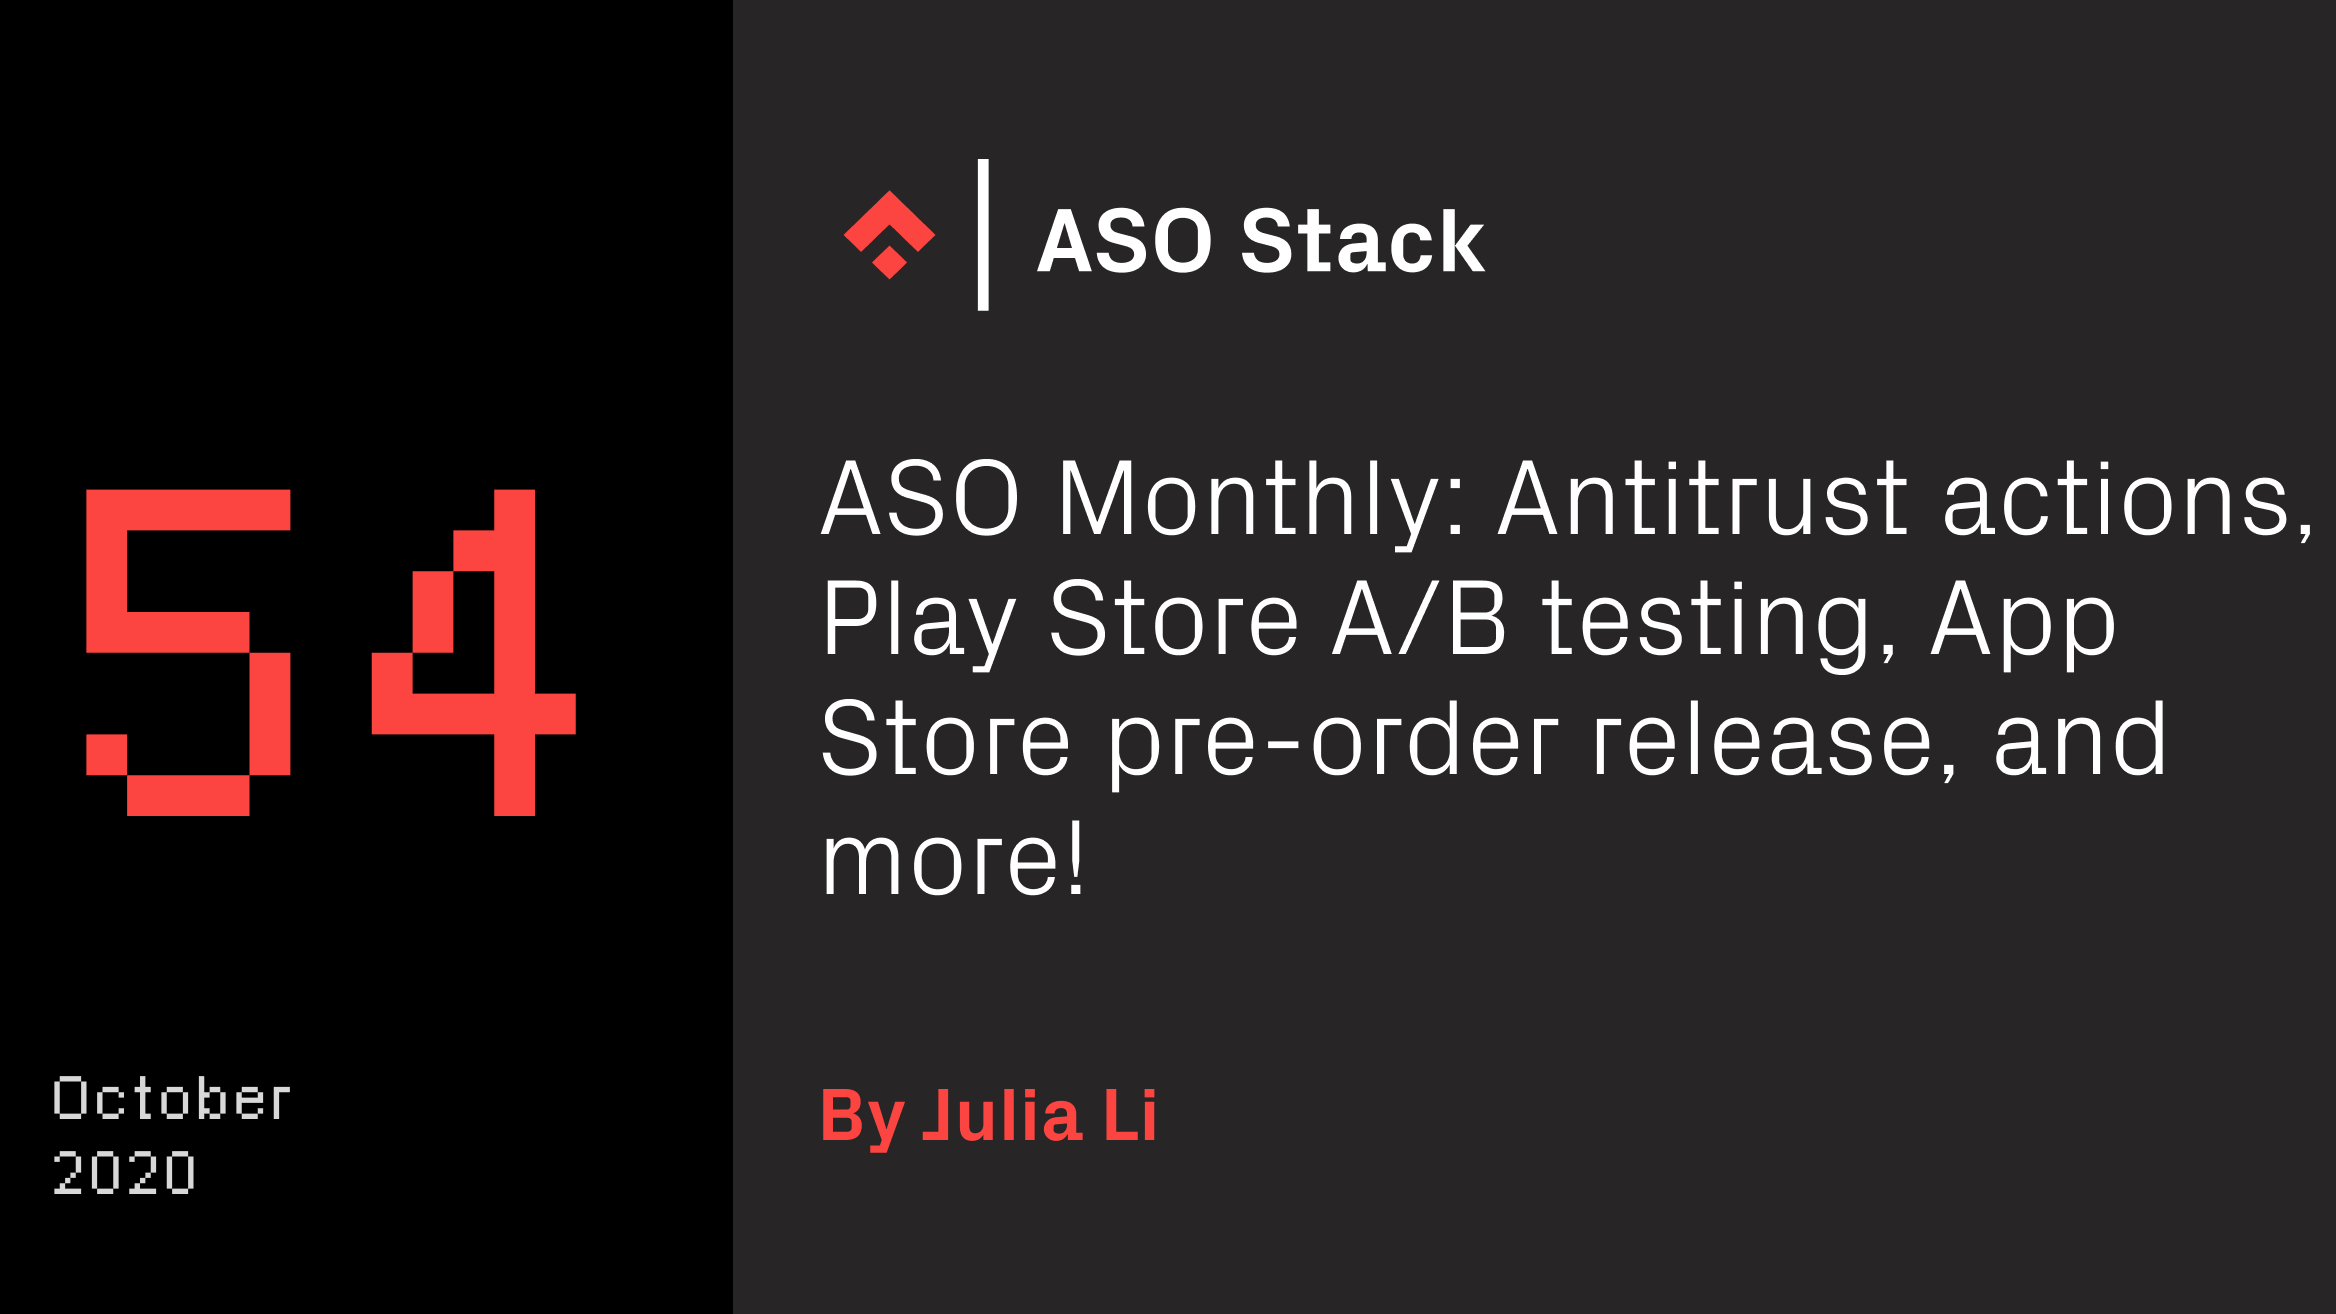 aso monthly 54 aso stack